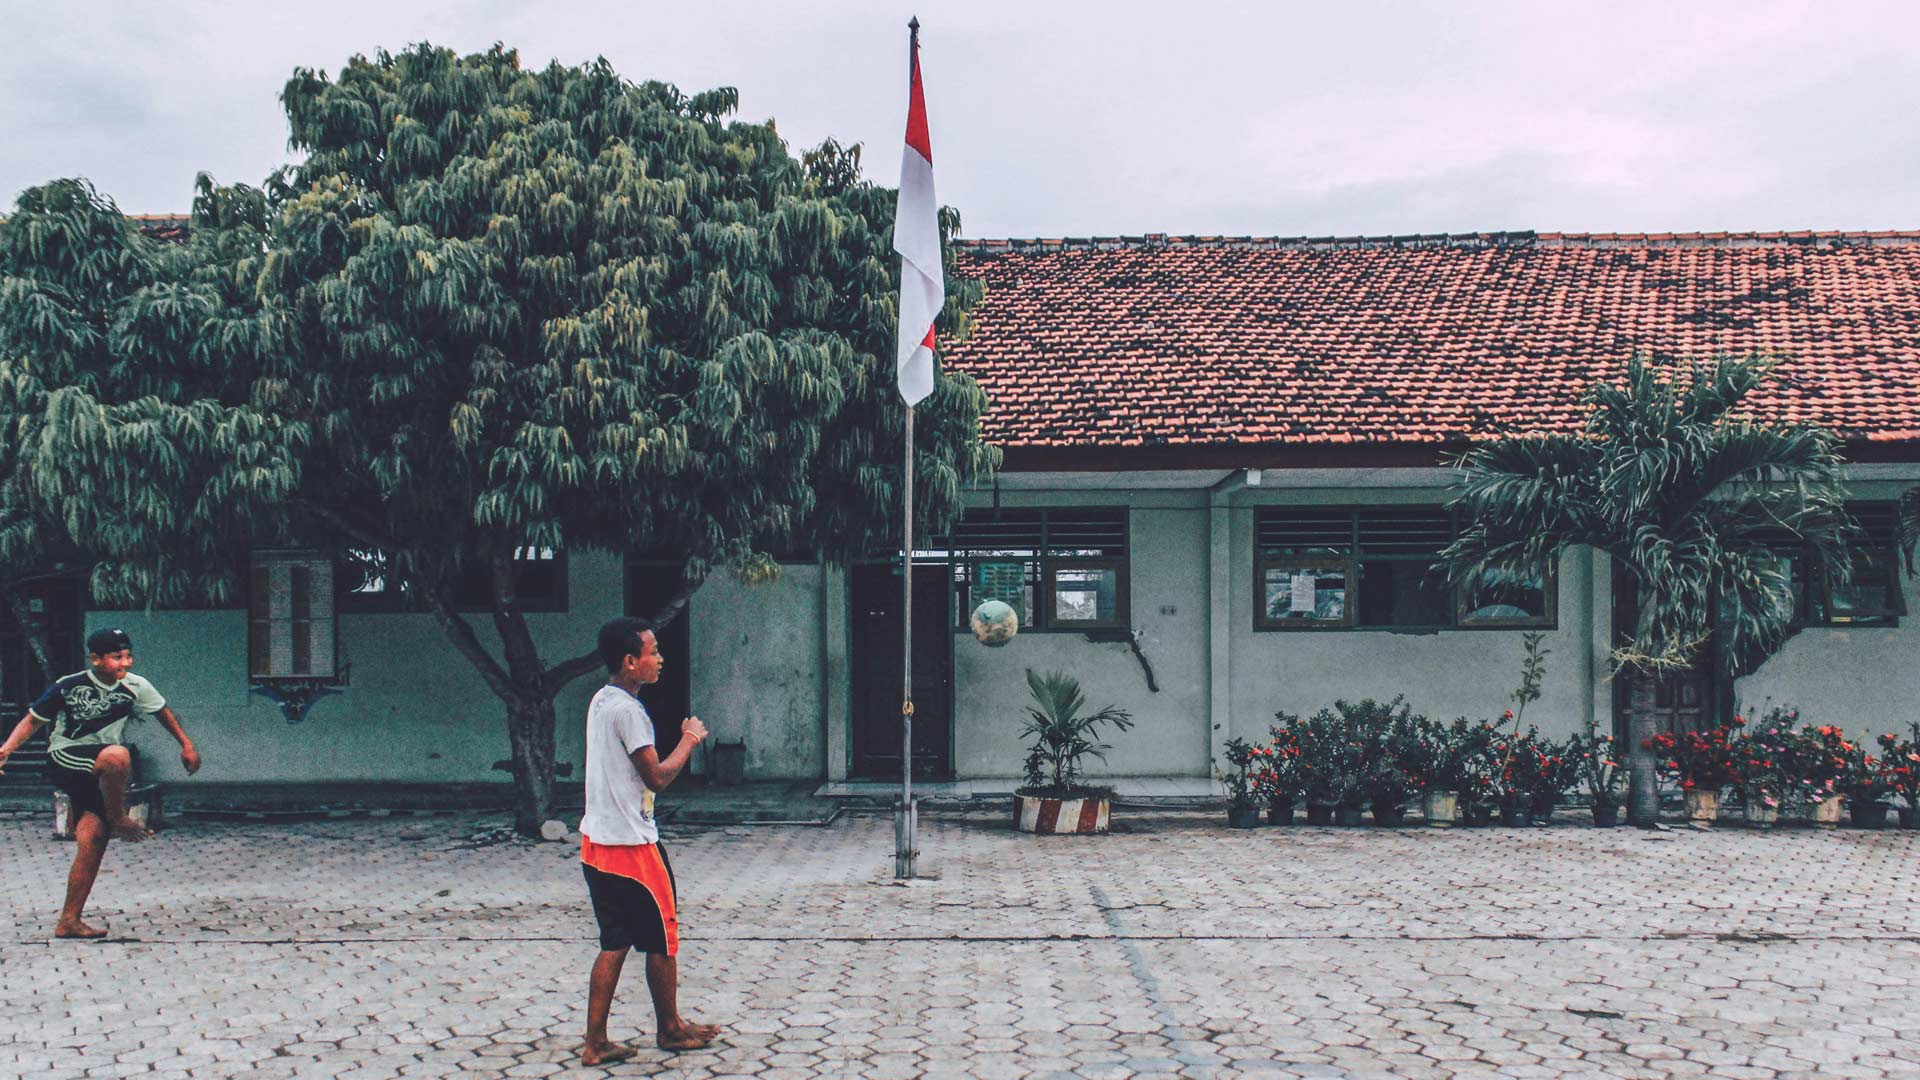 Indonesia street soccer